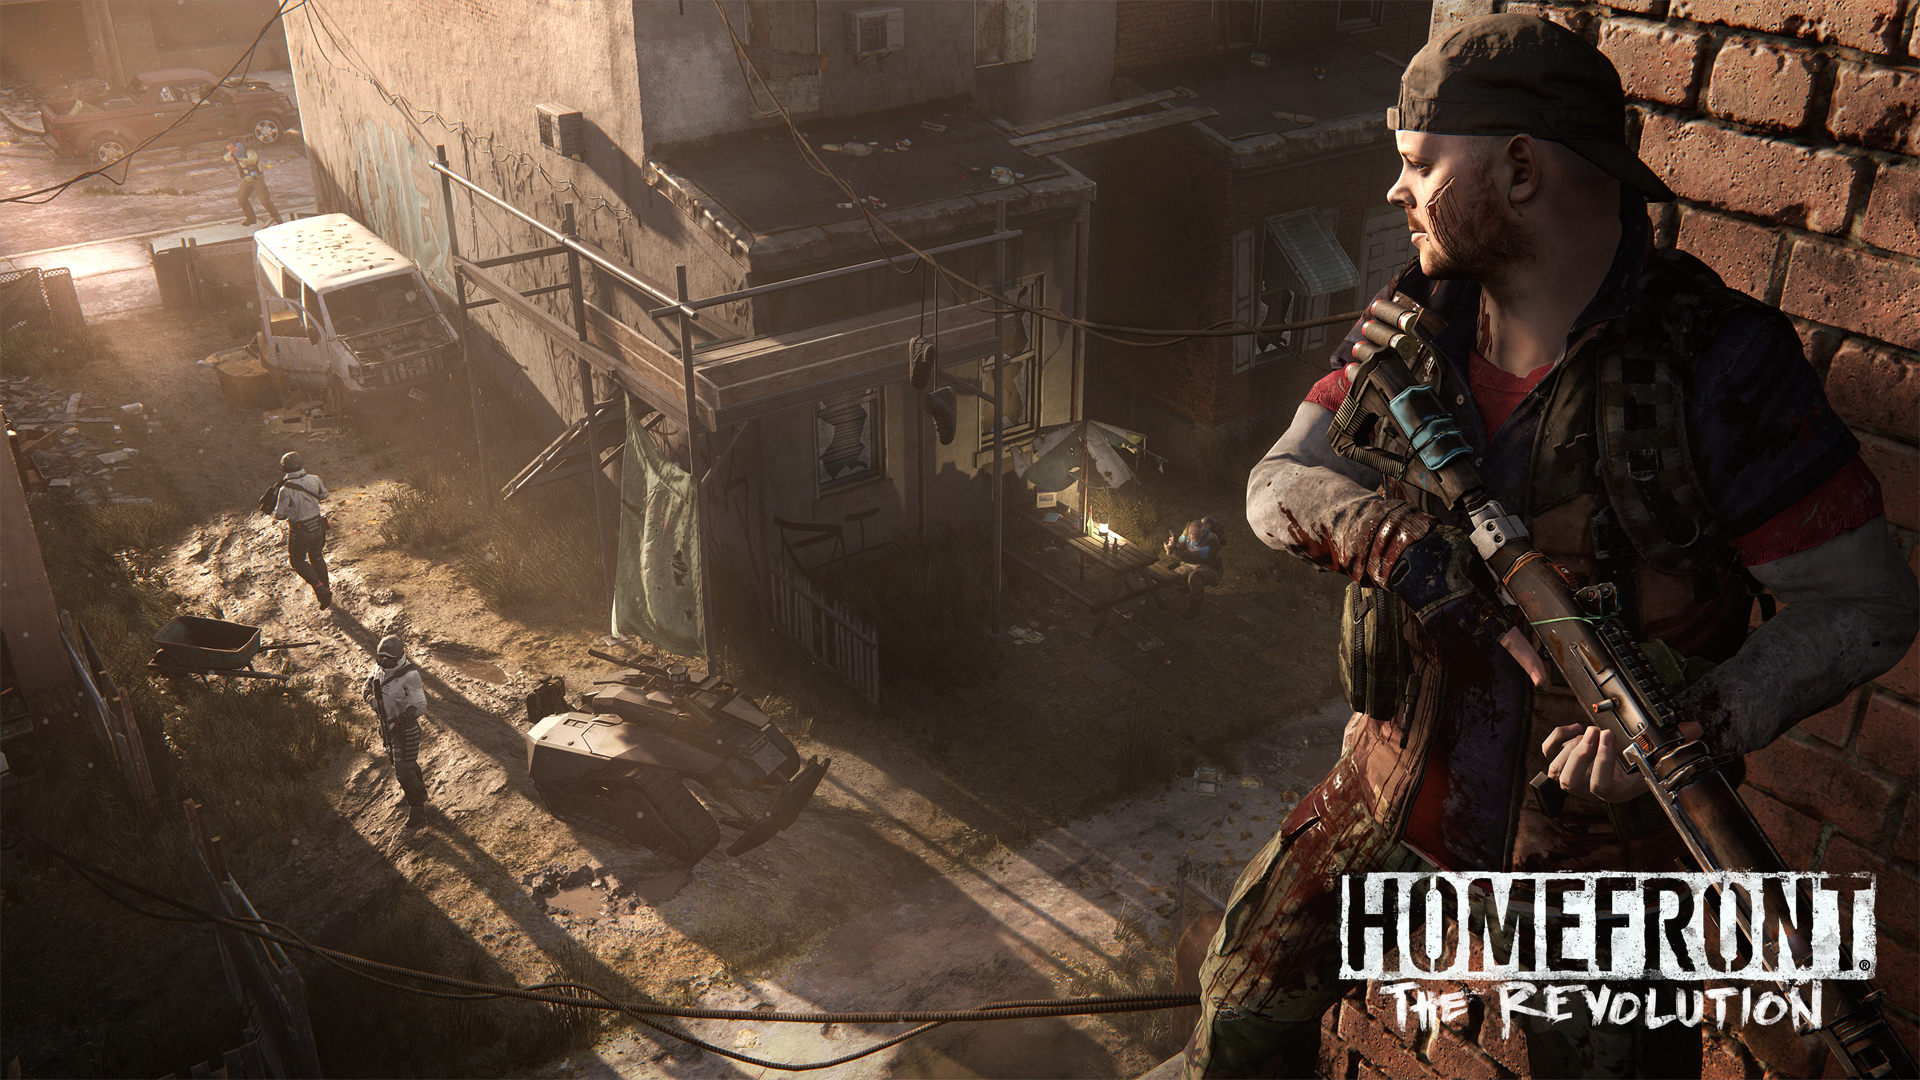 . Hdpng.com Gallery Image 6 Hdpng.com  - Homefront Video Game, Transparent background PNG HD thumbnail